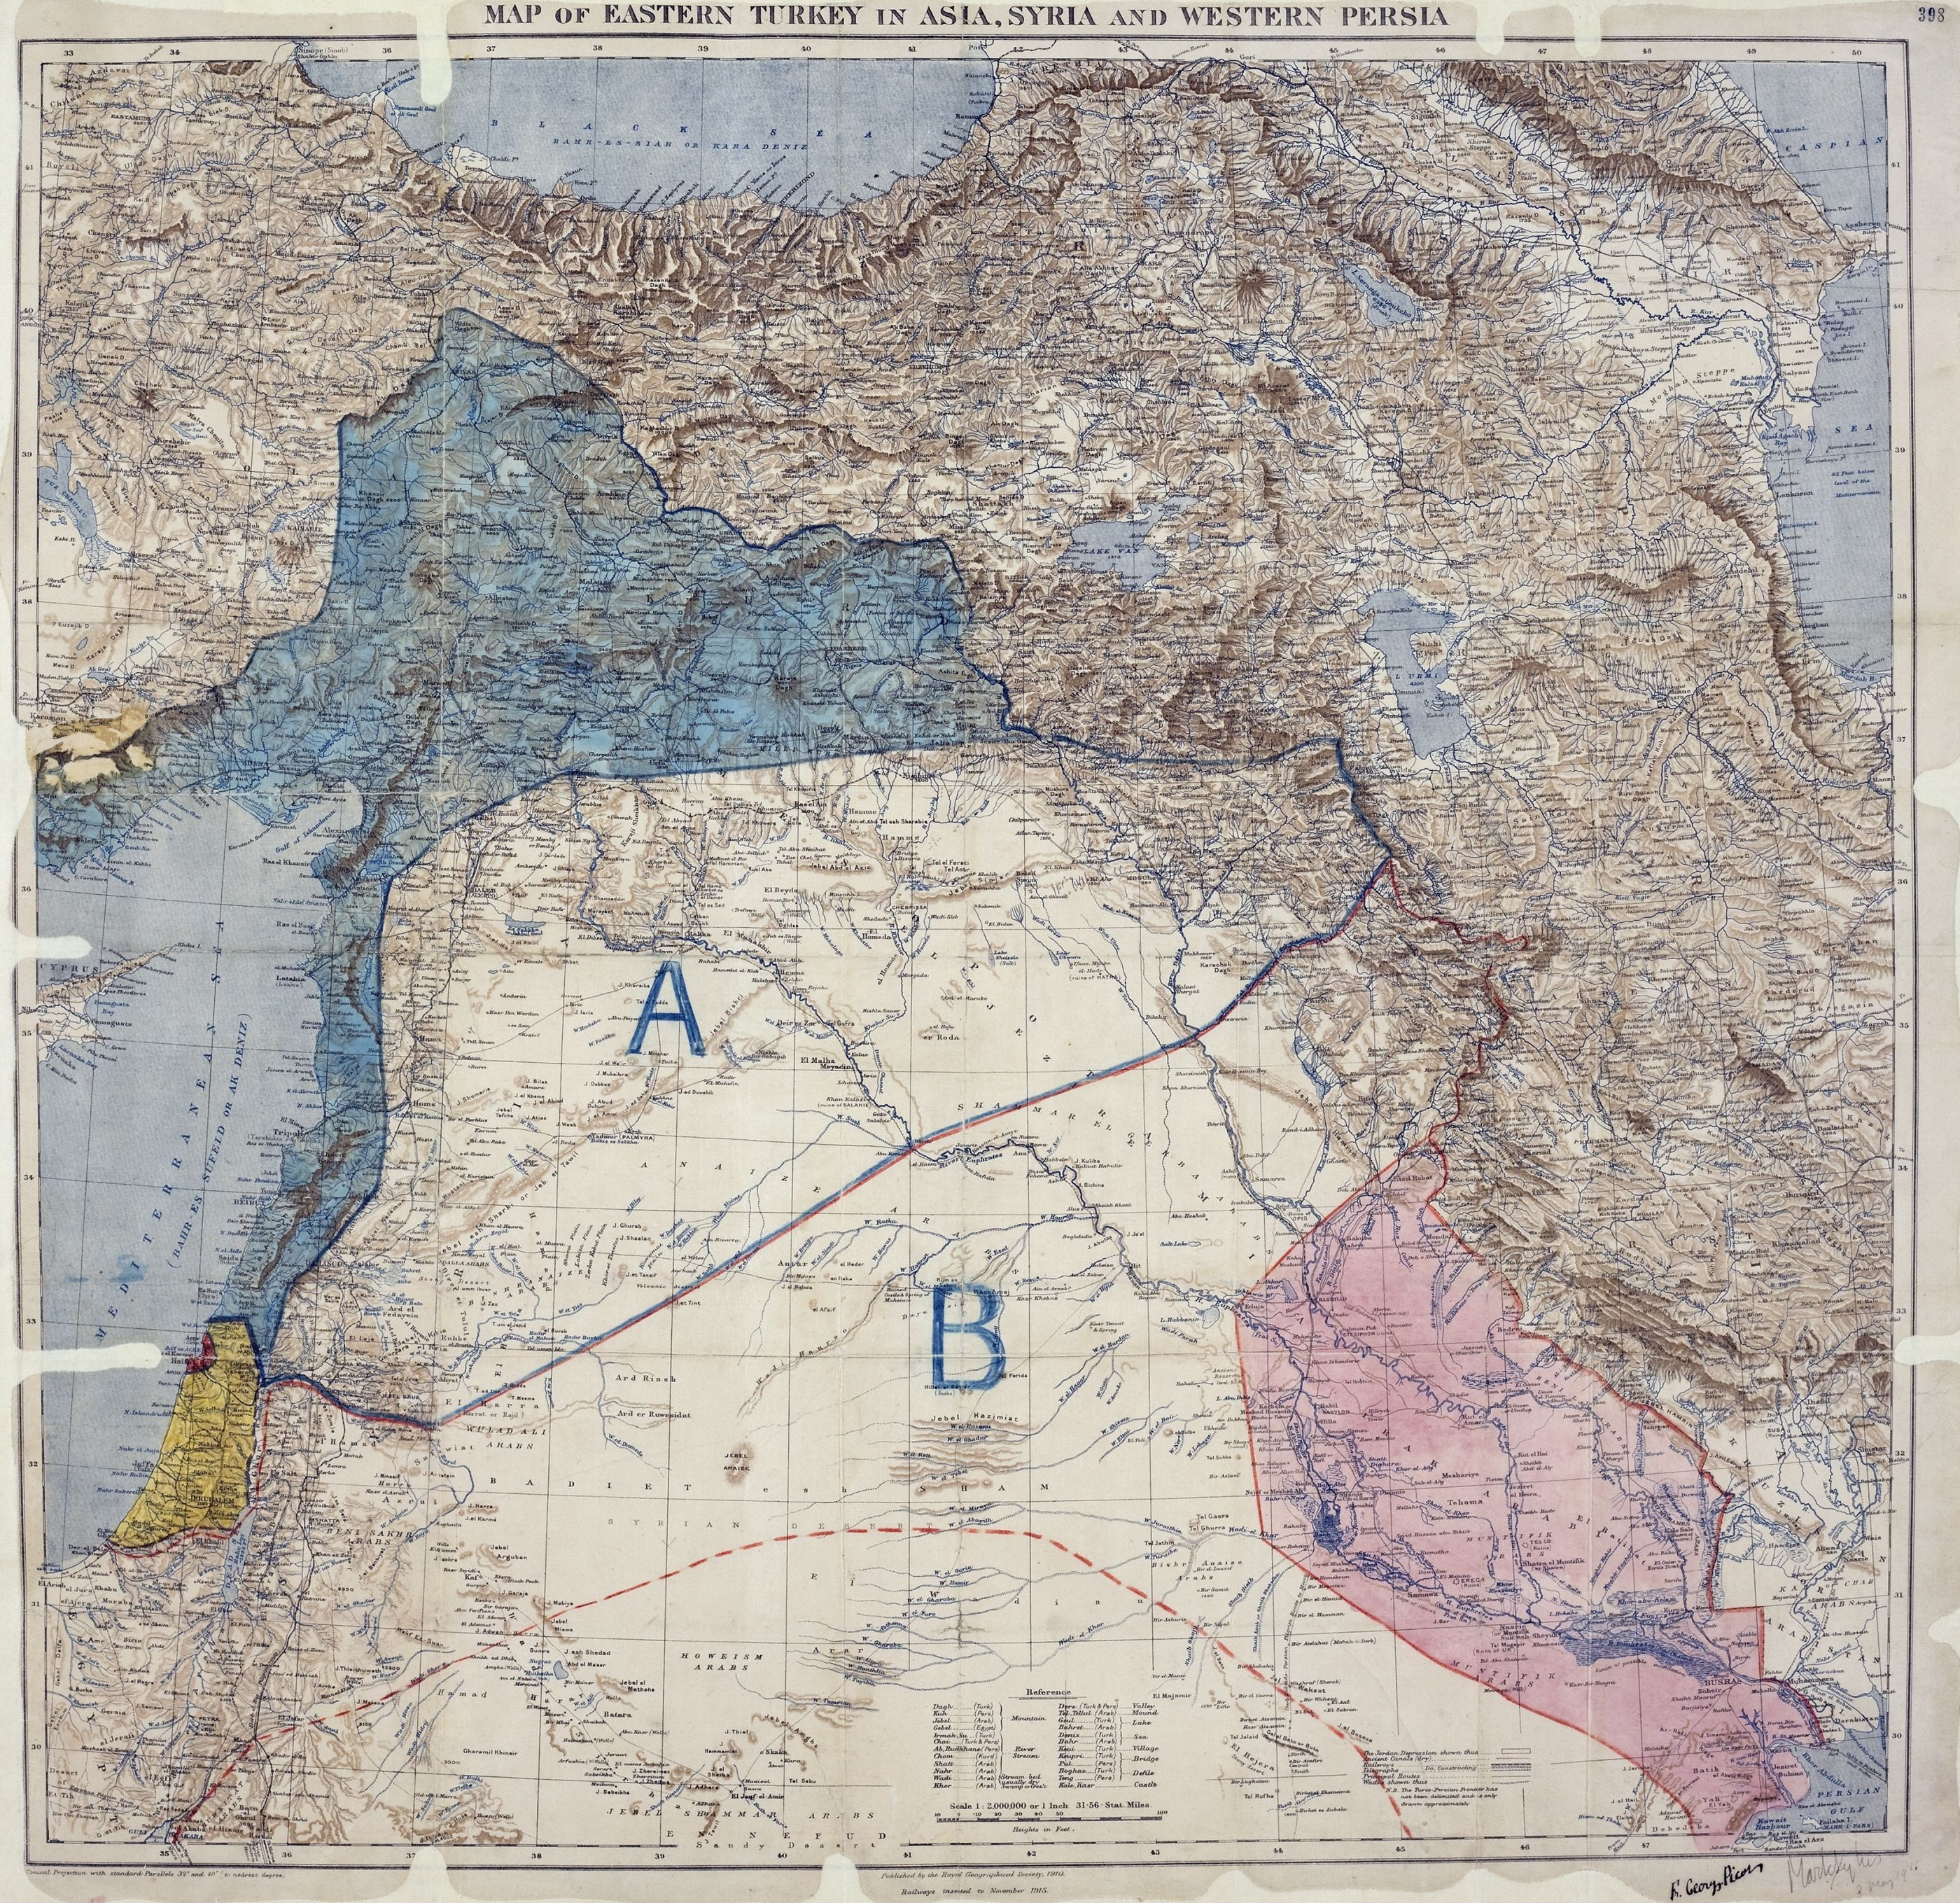 sykes_picot_agreement_map.jpg